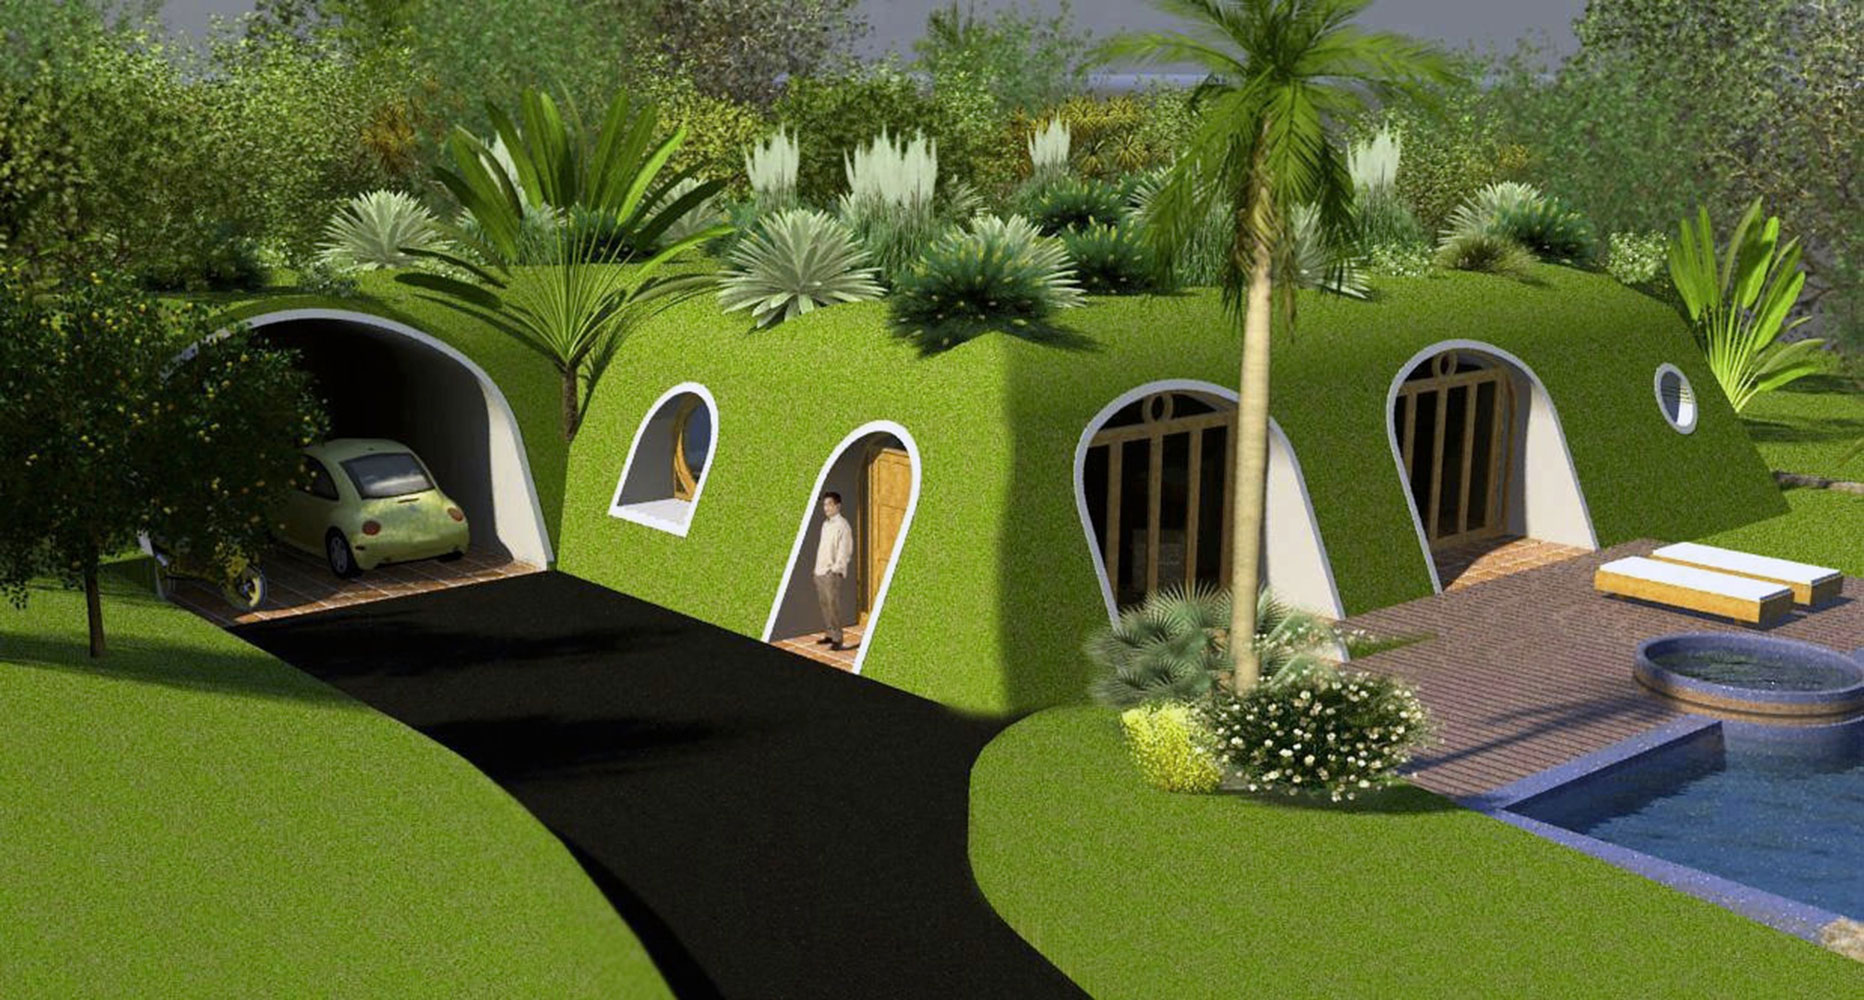 these prefabricated homes make living out your hobbit dreams a reality